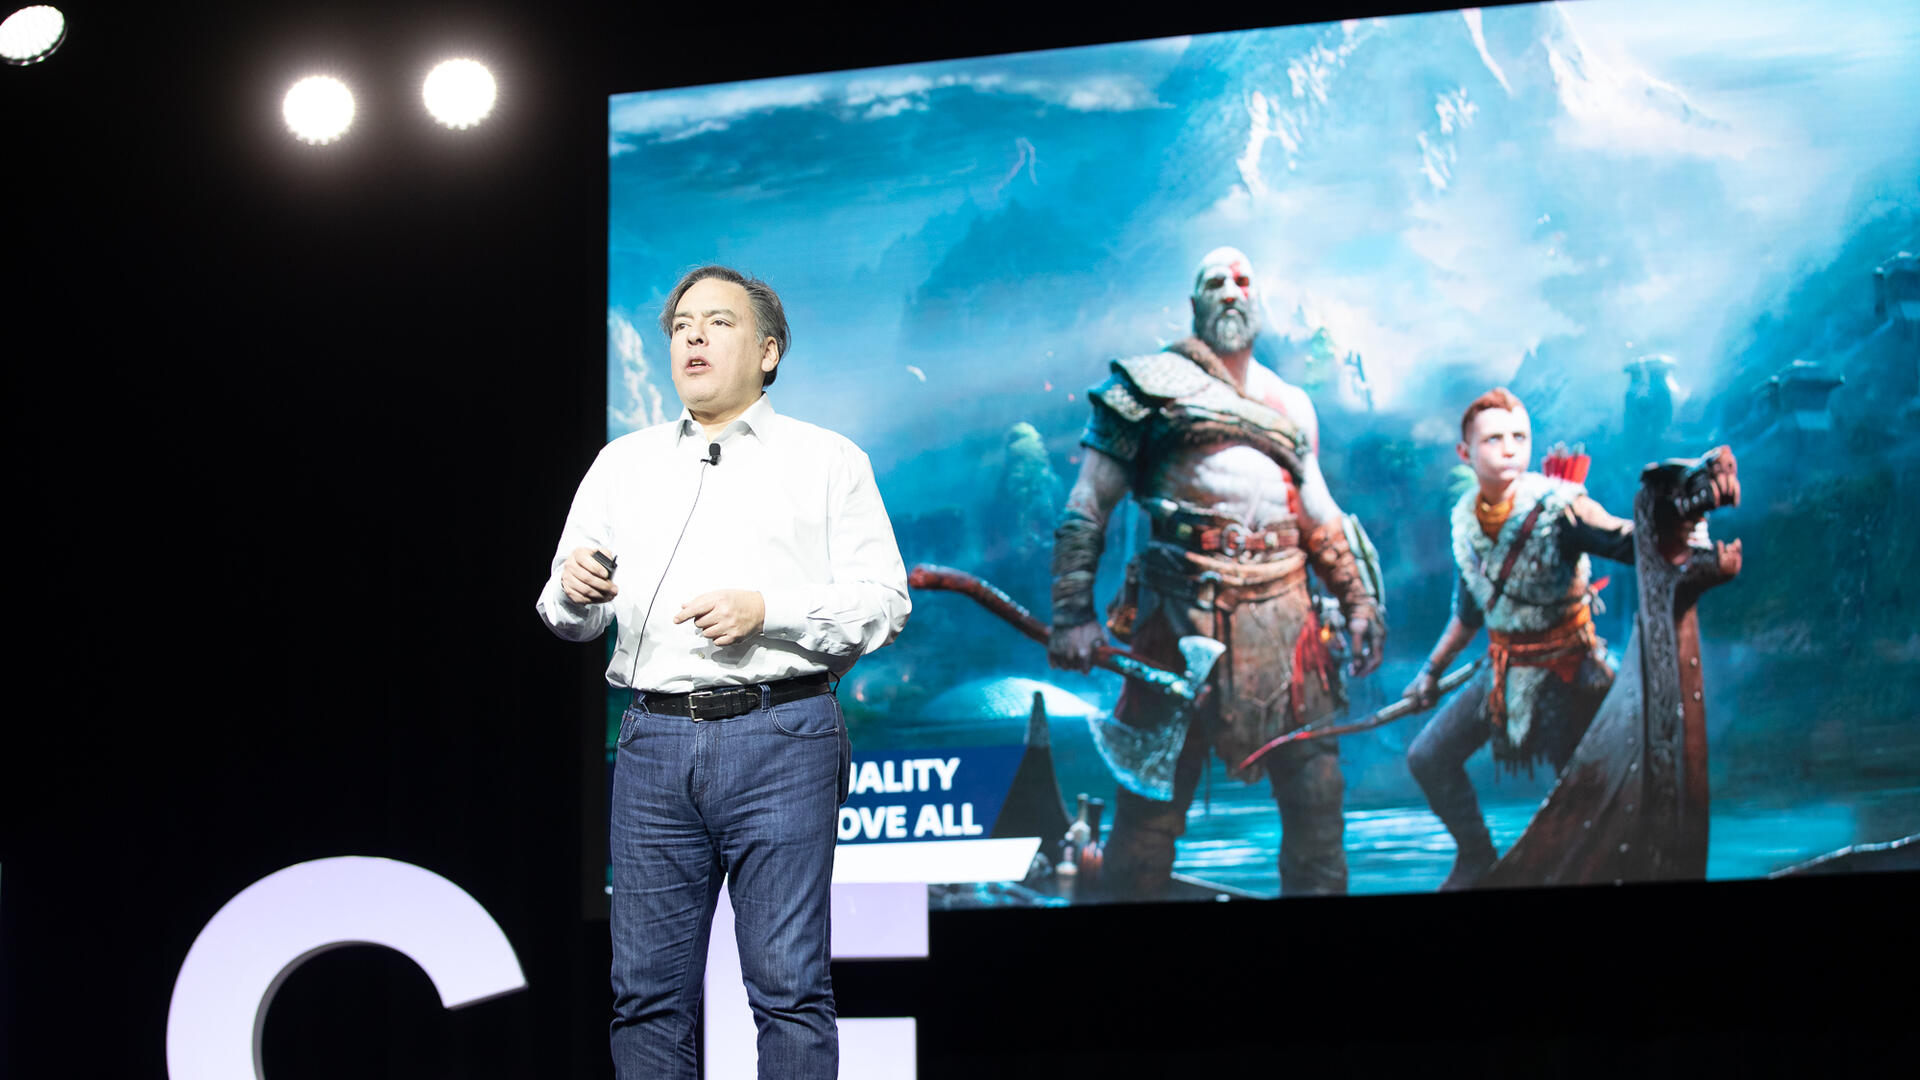 """PlayStation 3 Was Our Icarus Moment:"" SIE Chairman Shawn Layden Reflects on the Difficult PS3 Era, Praises Switch"